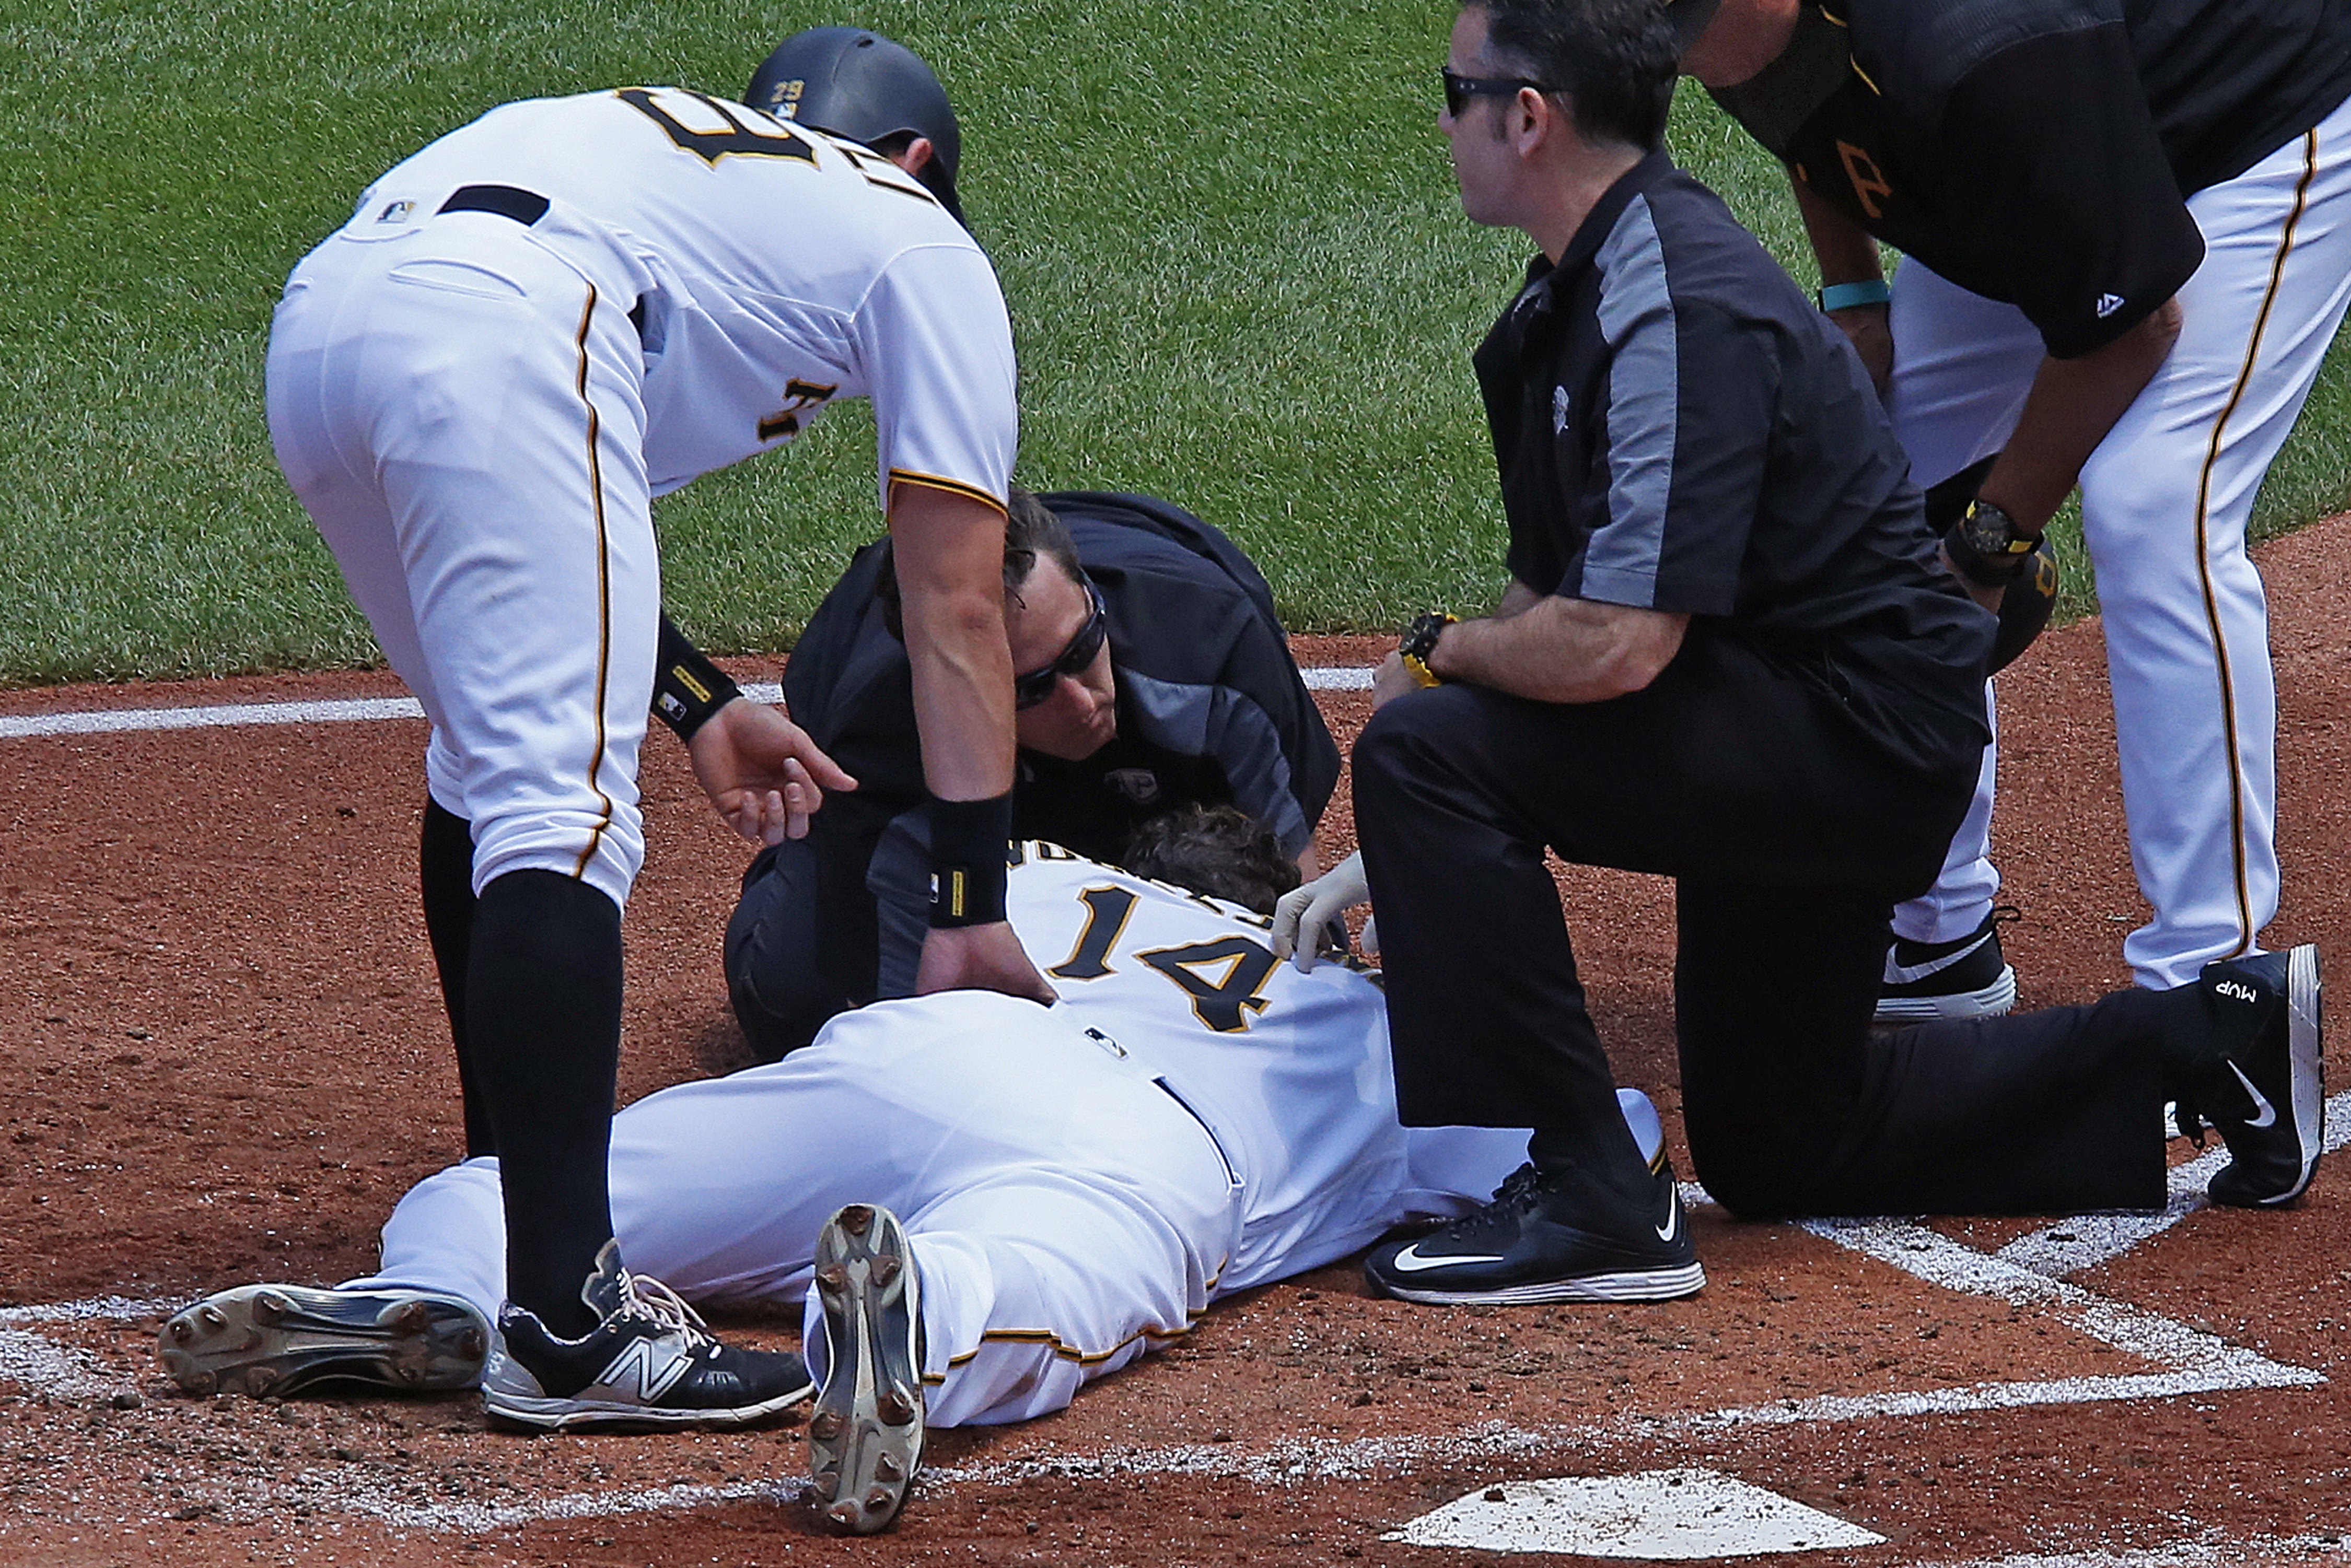 Pittsburgh Pirates pitcher Ryan Vogelsong, center, is helped by team trainers as teammate Francisco Cervelli, left and manager Clint Hurdle, right, look on after being hit in the head by a pitch from starting pitcher Jordan Lyles in the second inning of a